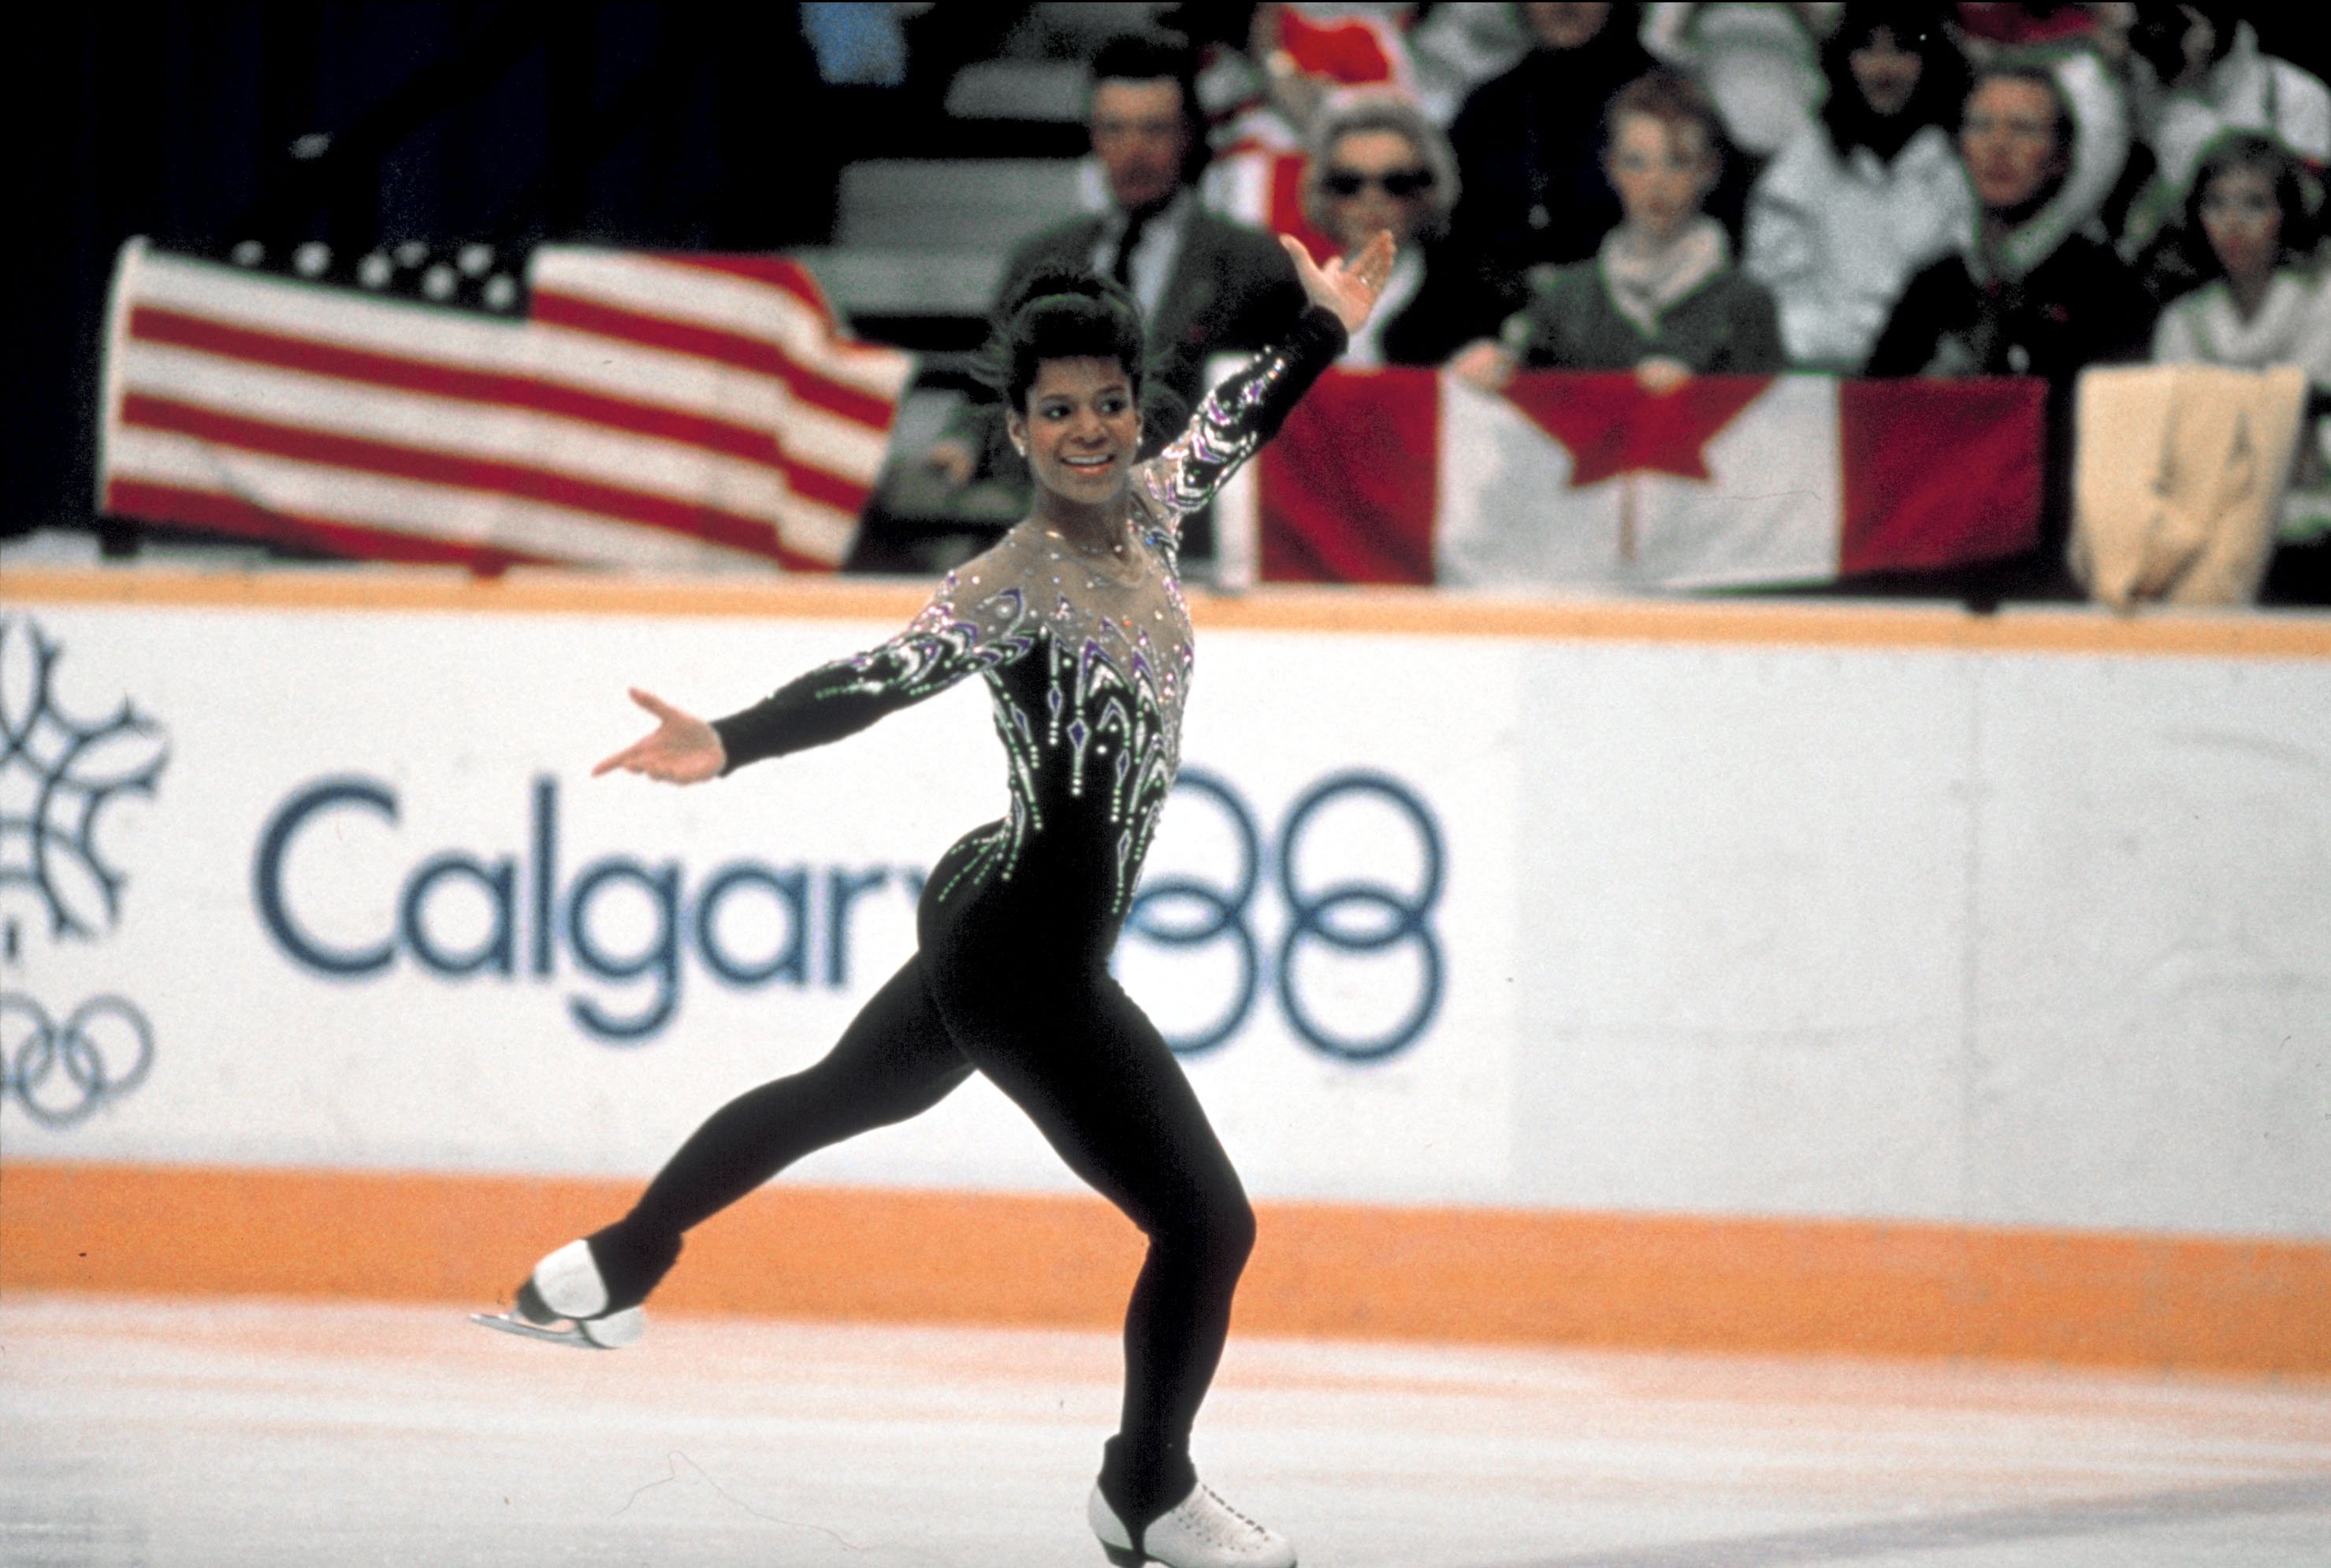 Figure skater  Debi Thomas competing in unident. event at 1988 Winter Olympics. | Photo: GettyImages